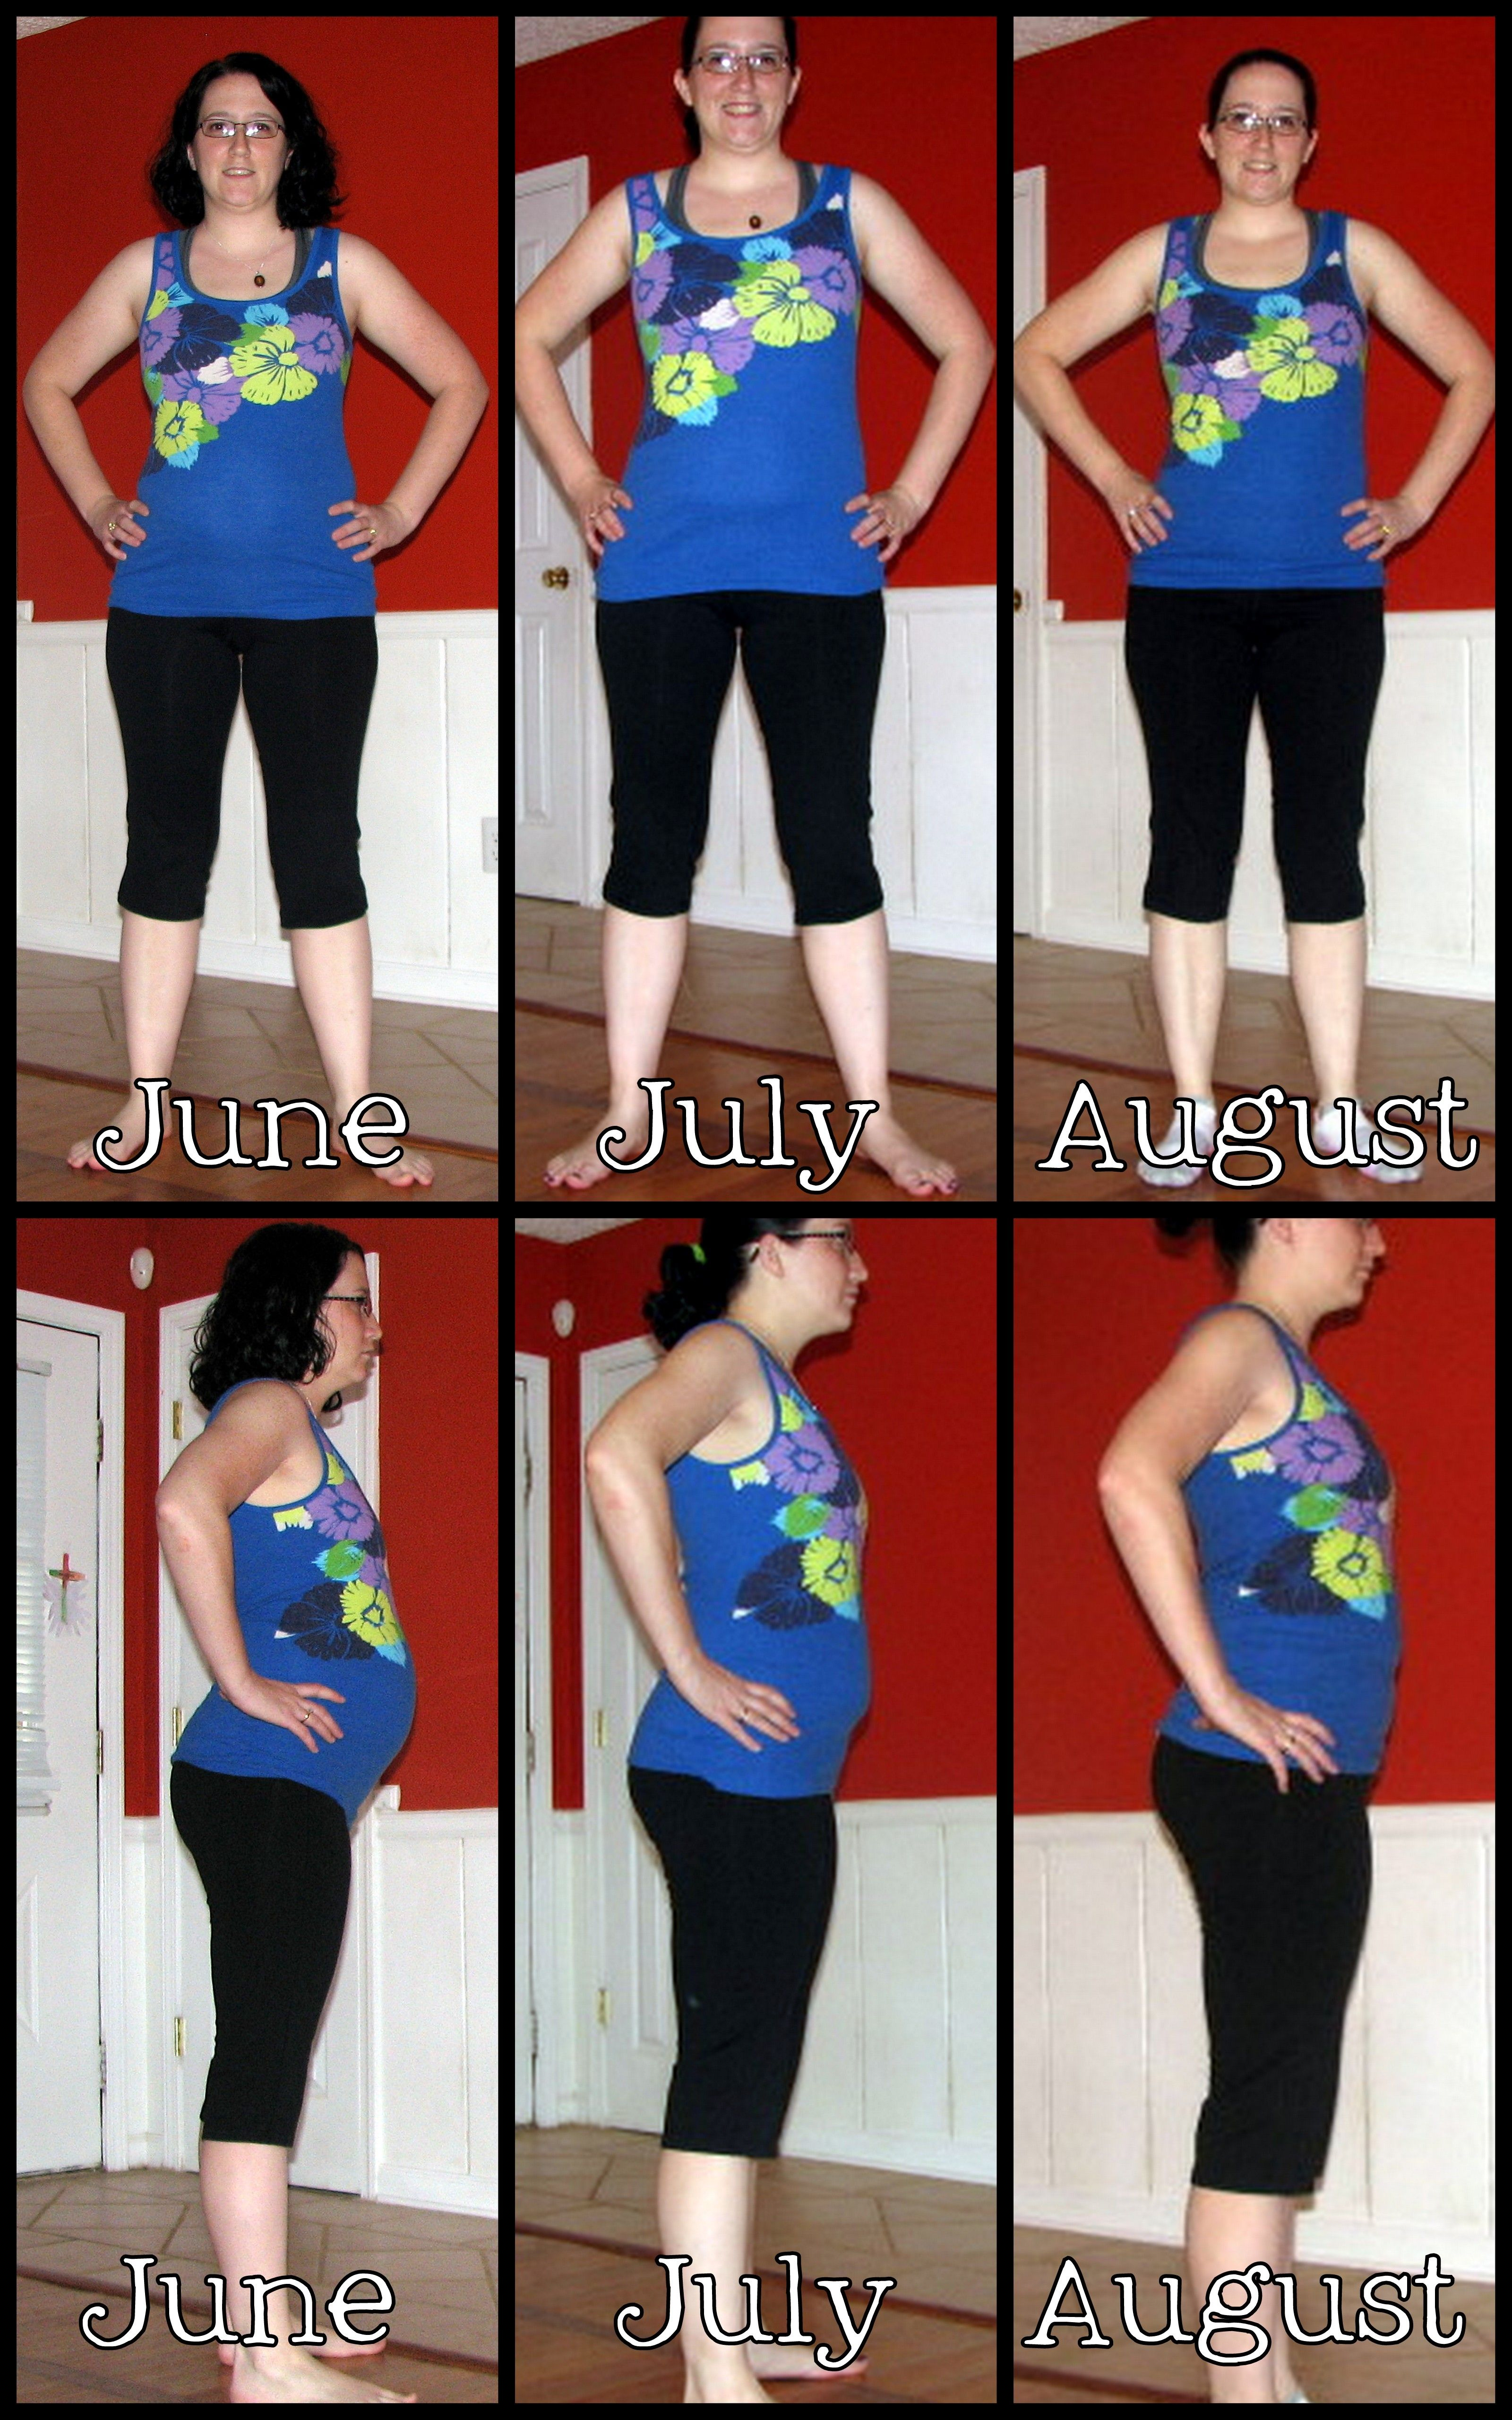 Stone easy weight loss challenges not program kind